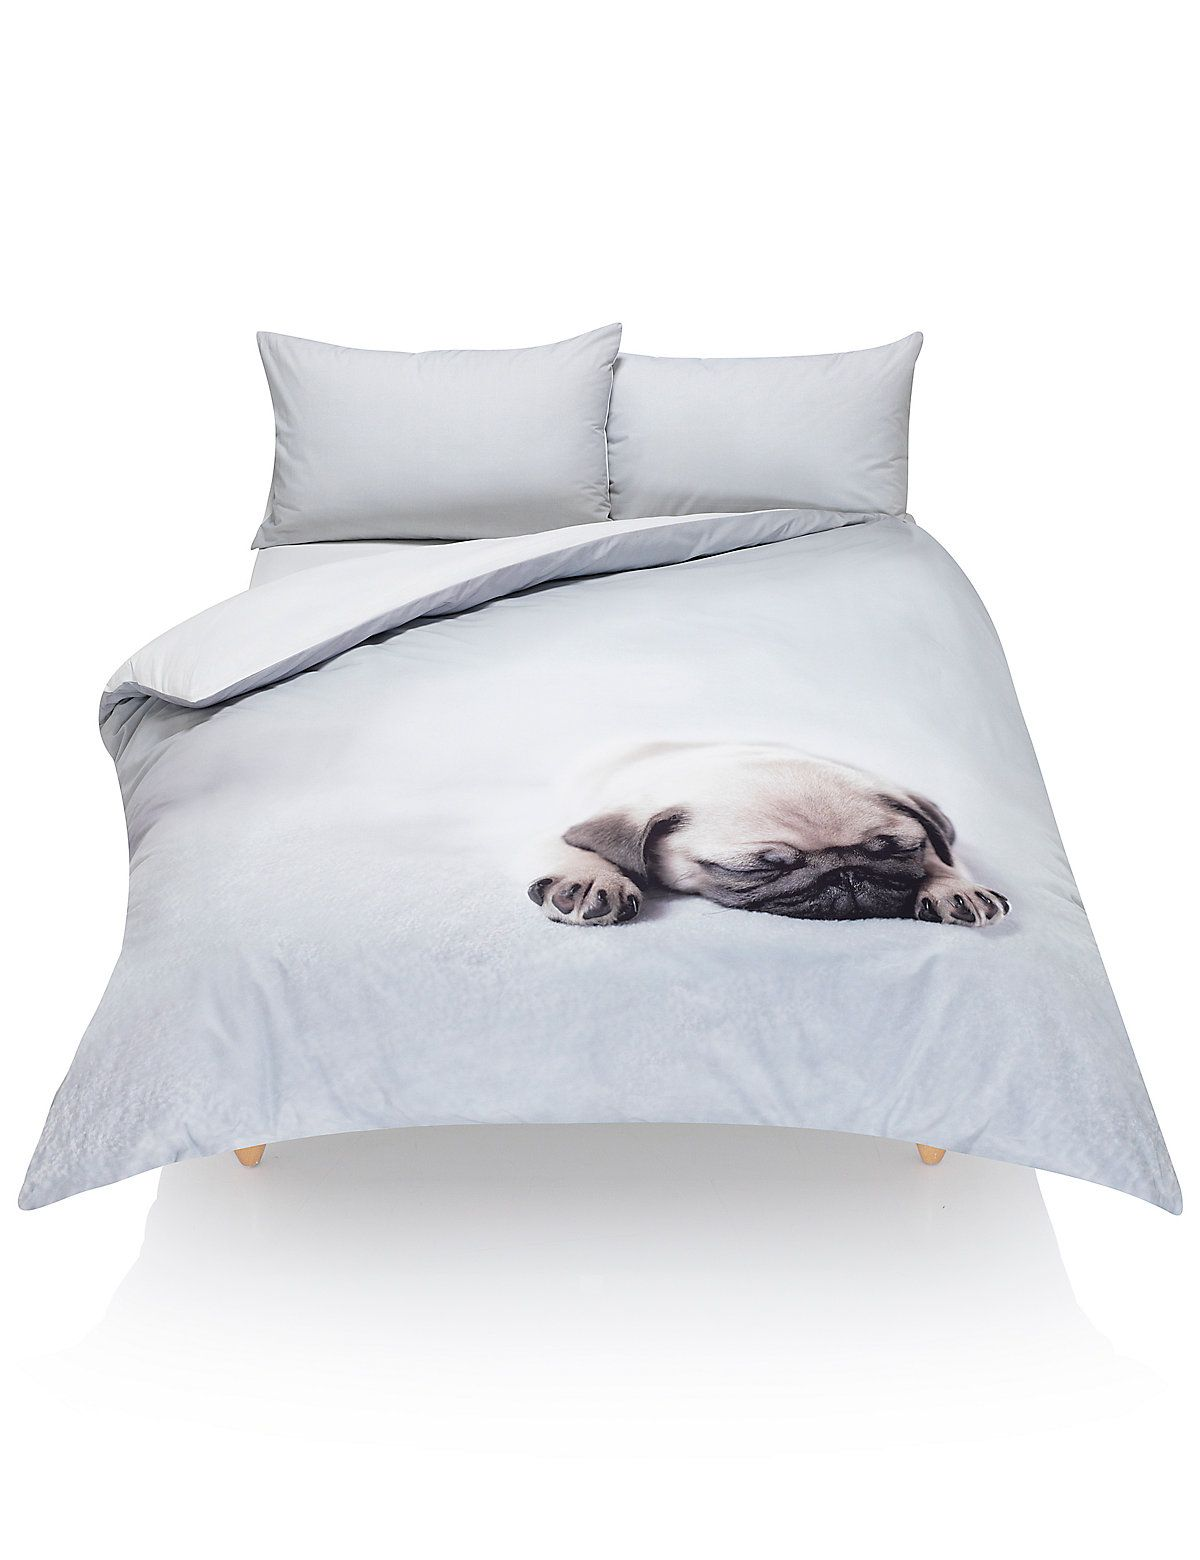 Best Of Most Comfortable Duvet Covers